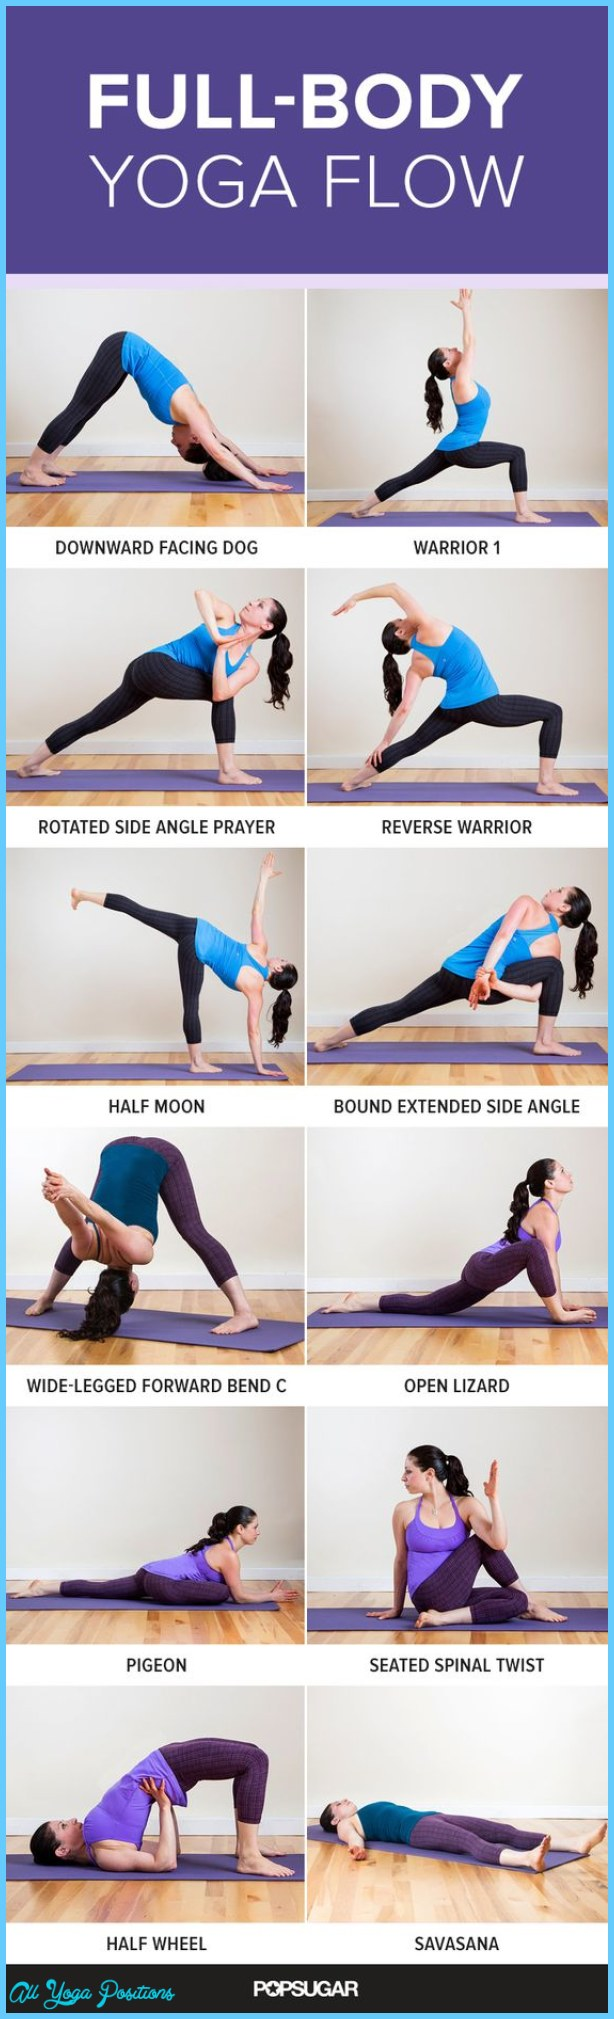 Cool Down Yoga Poses - AllYogaPositions.com ®